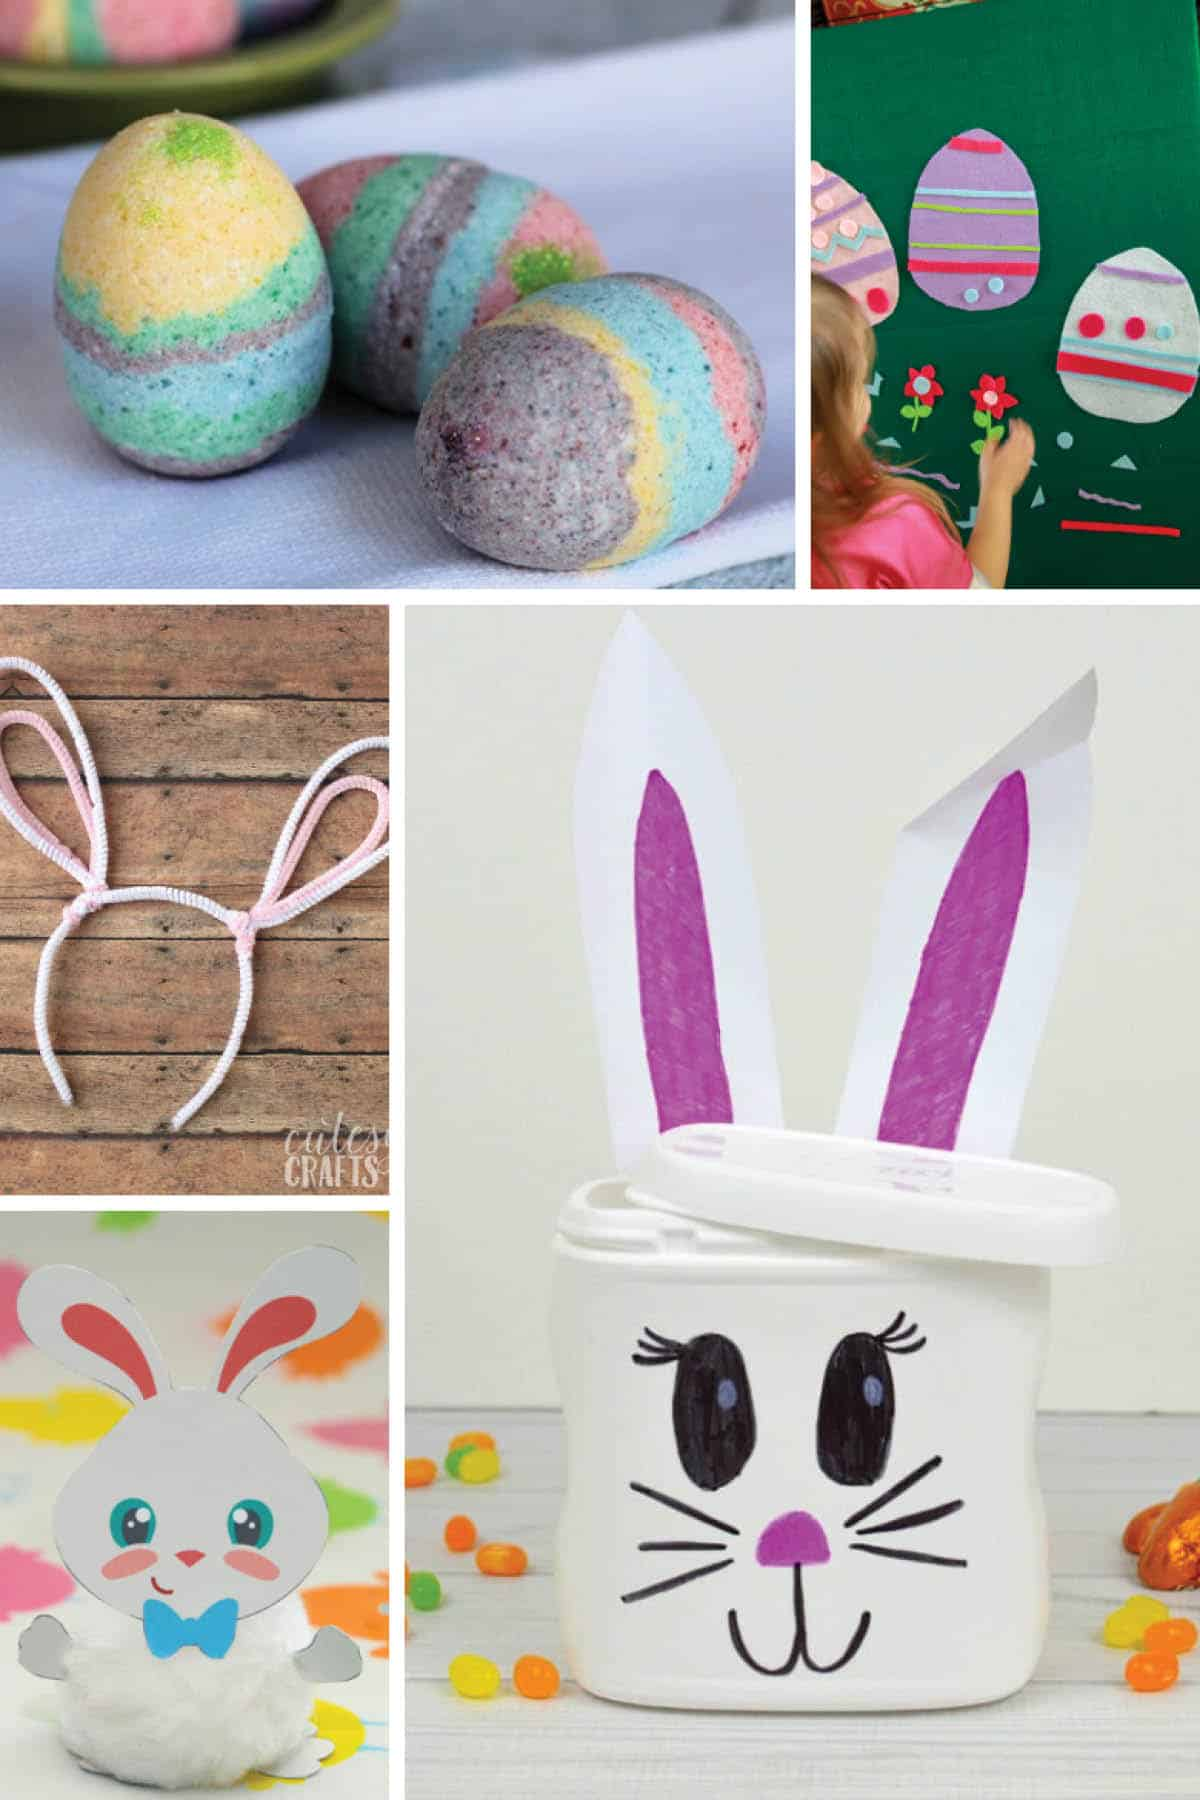 13 Adorable Easter Crafts To Make With Your Kids